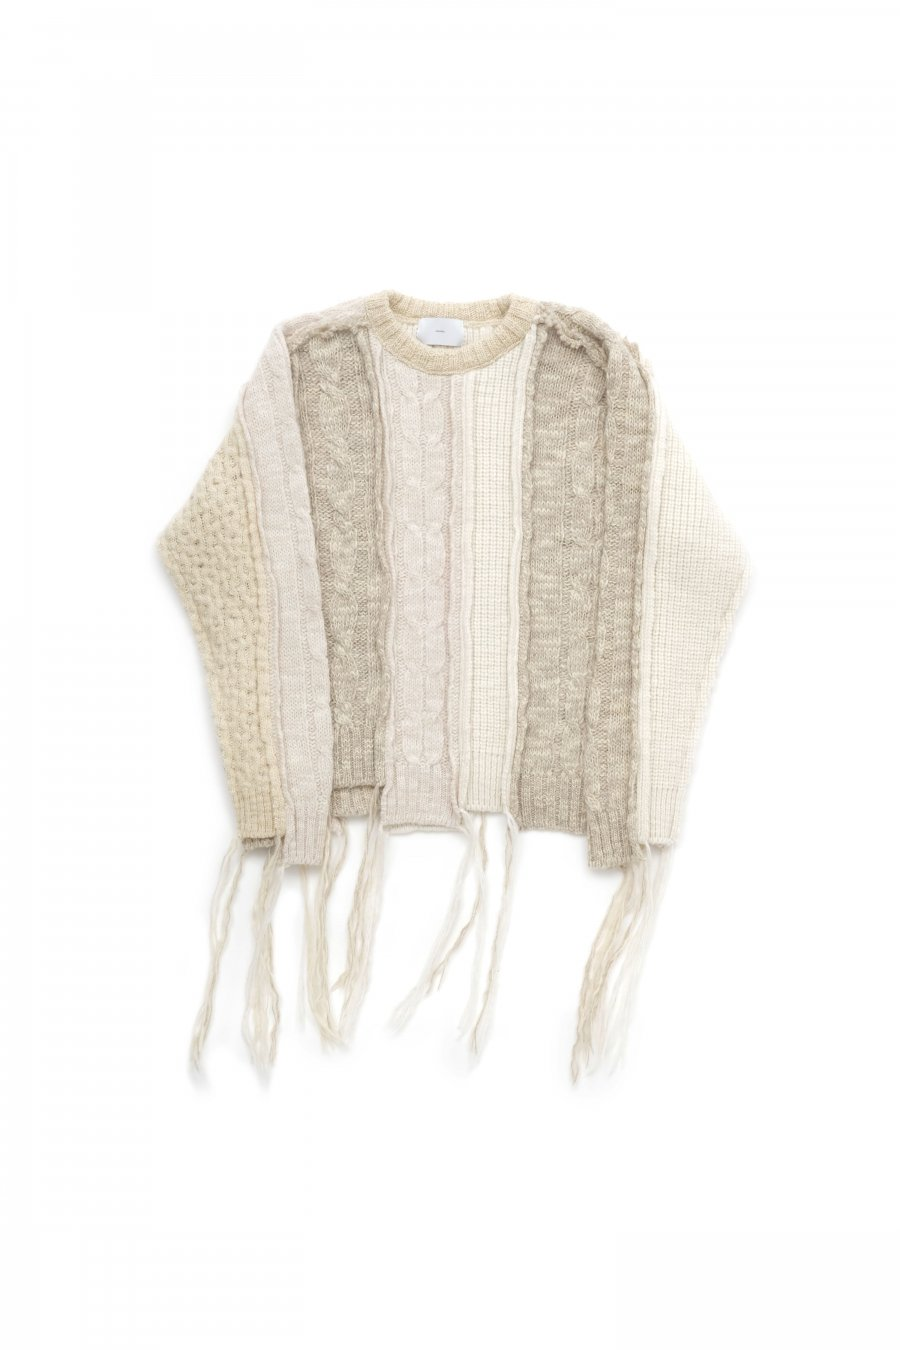 SUGARHILL  MULTICOLOR CABLE BUG KNIT(MULTI-WHITE)<img class='new_mark_img2' src='https://img.shop-pro.jp/img/new/icons15.gif' style='border:none;display:inline;margin:0px;padding:0px;width:auto;' />